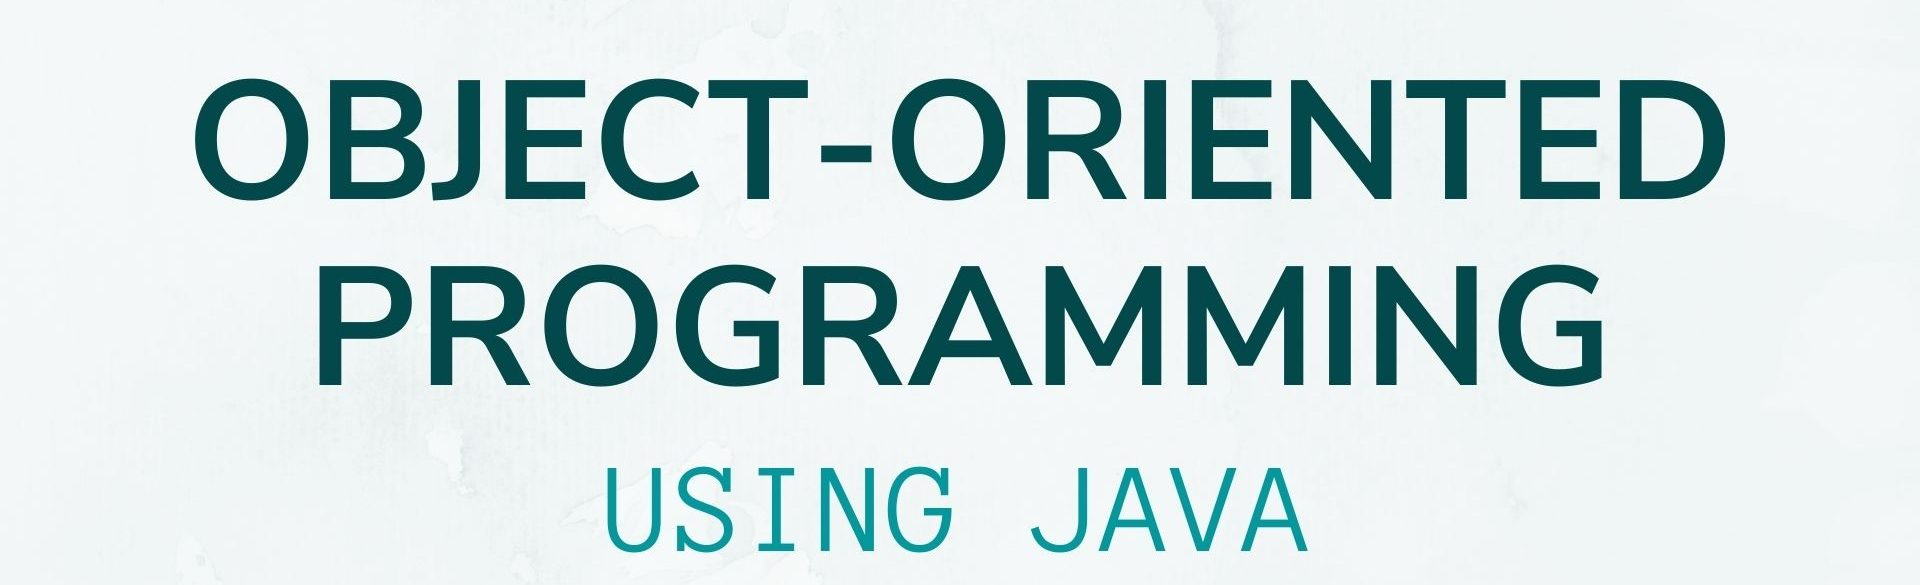 Object-Oriented Programming Using Java (Video)